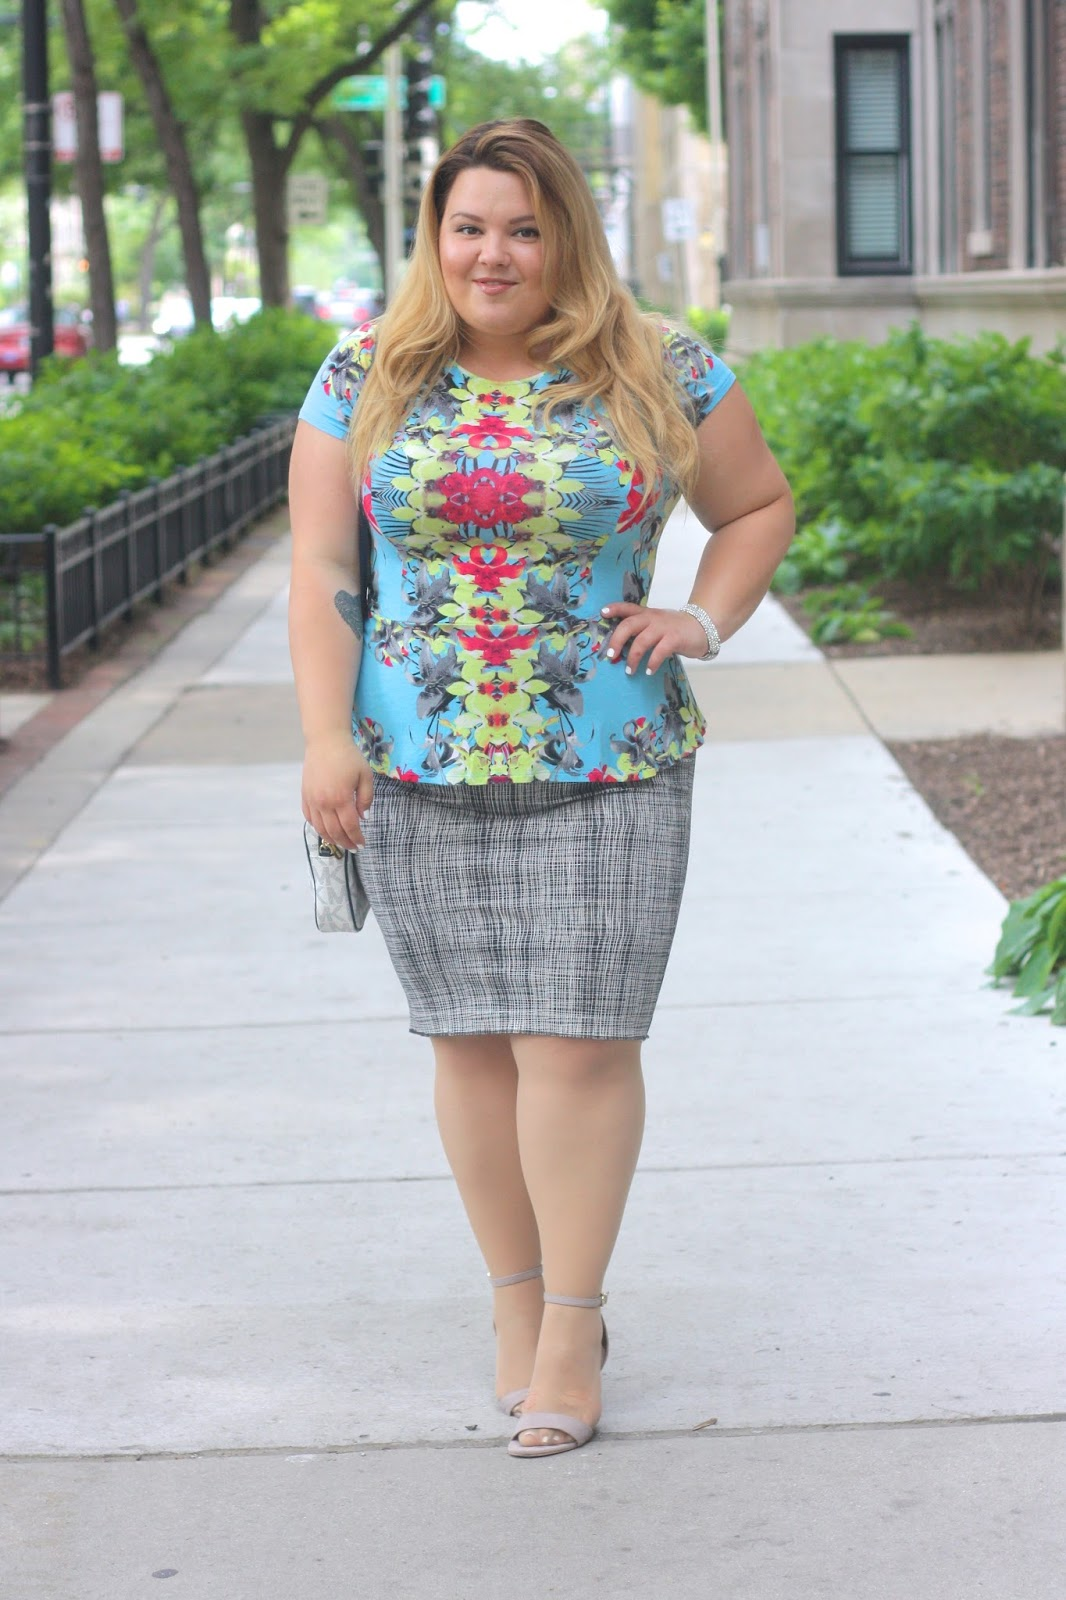 floral print, neon floral, floral symmetry, natalie craig, natalie in the city, chicago, fashion blogger, plus size fashion blogger, chicago blogger, windy city bloggers, vince camuto pencil skirt, plus size fashion, fatshion